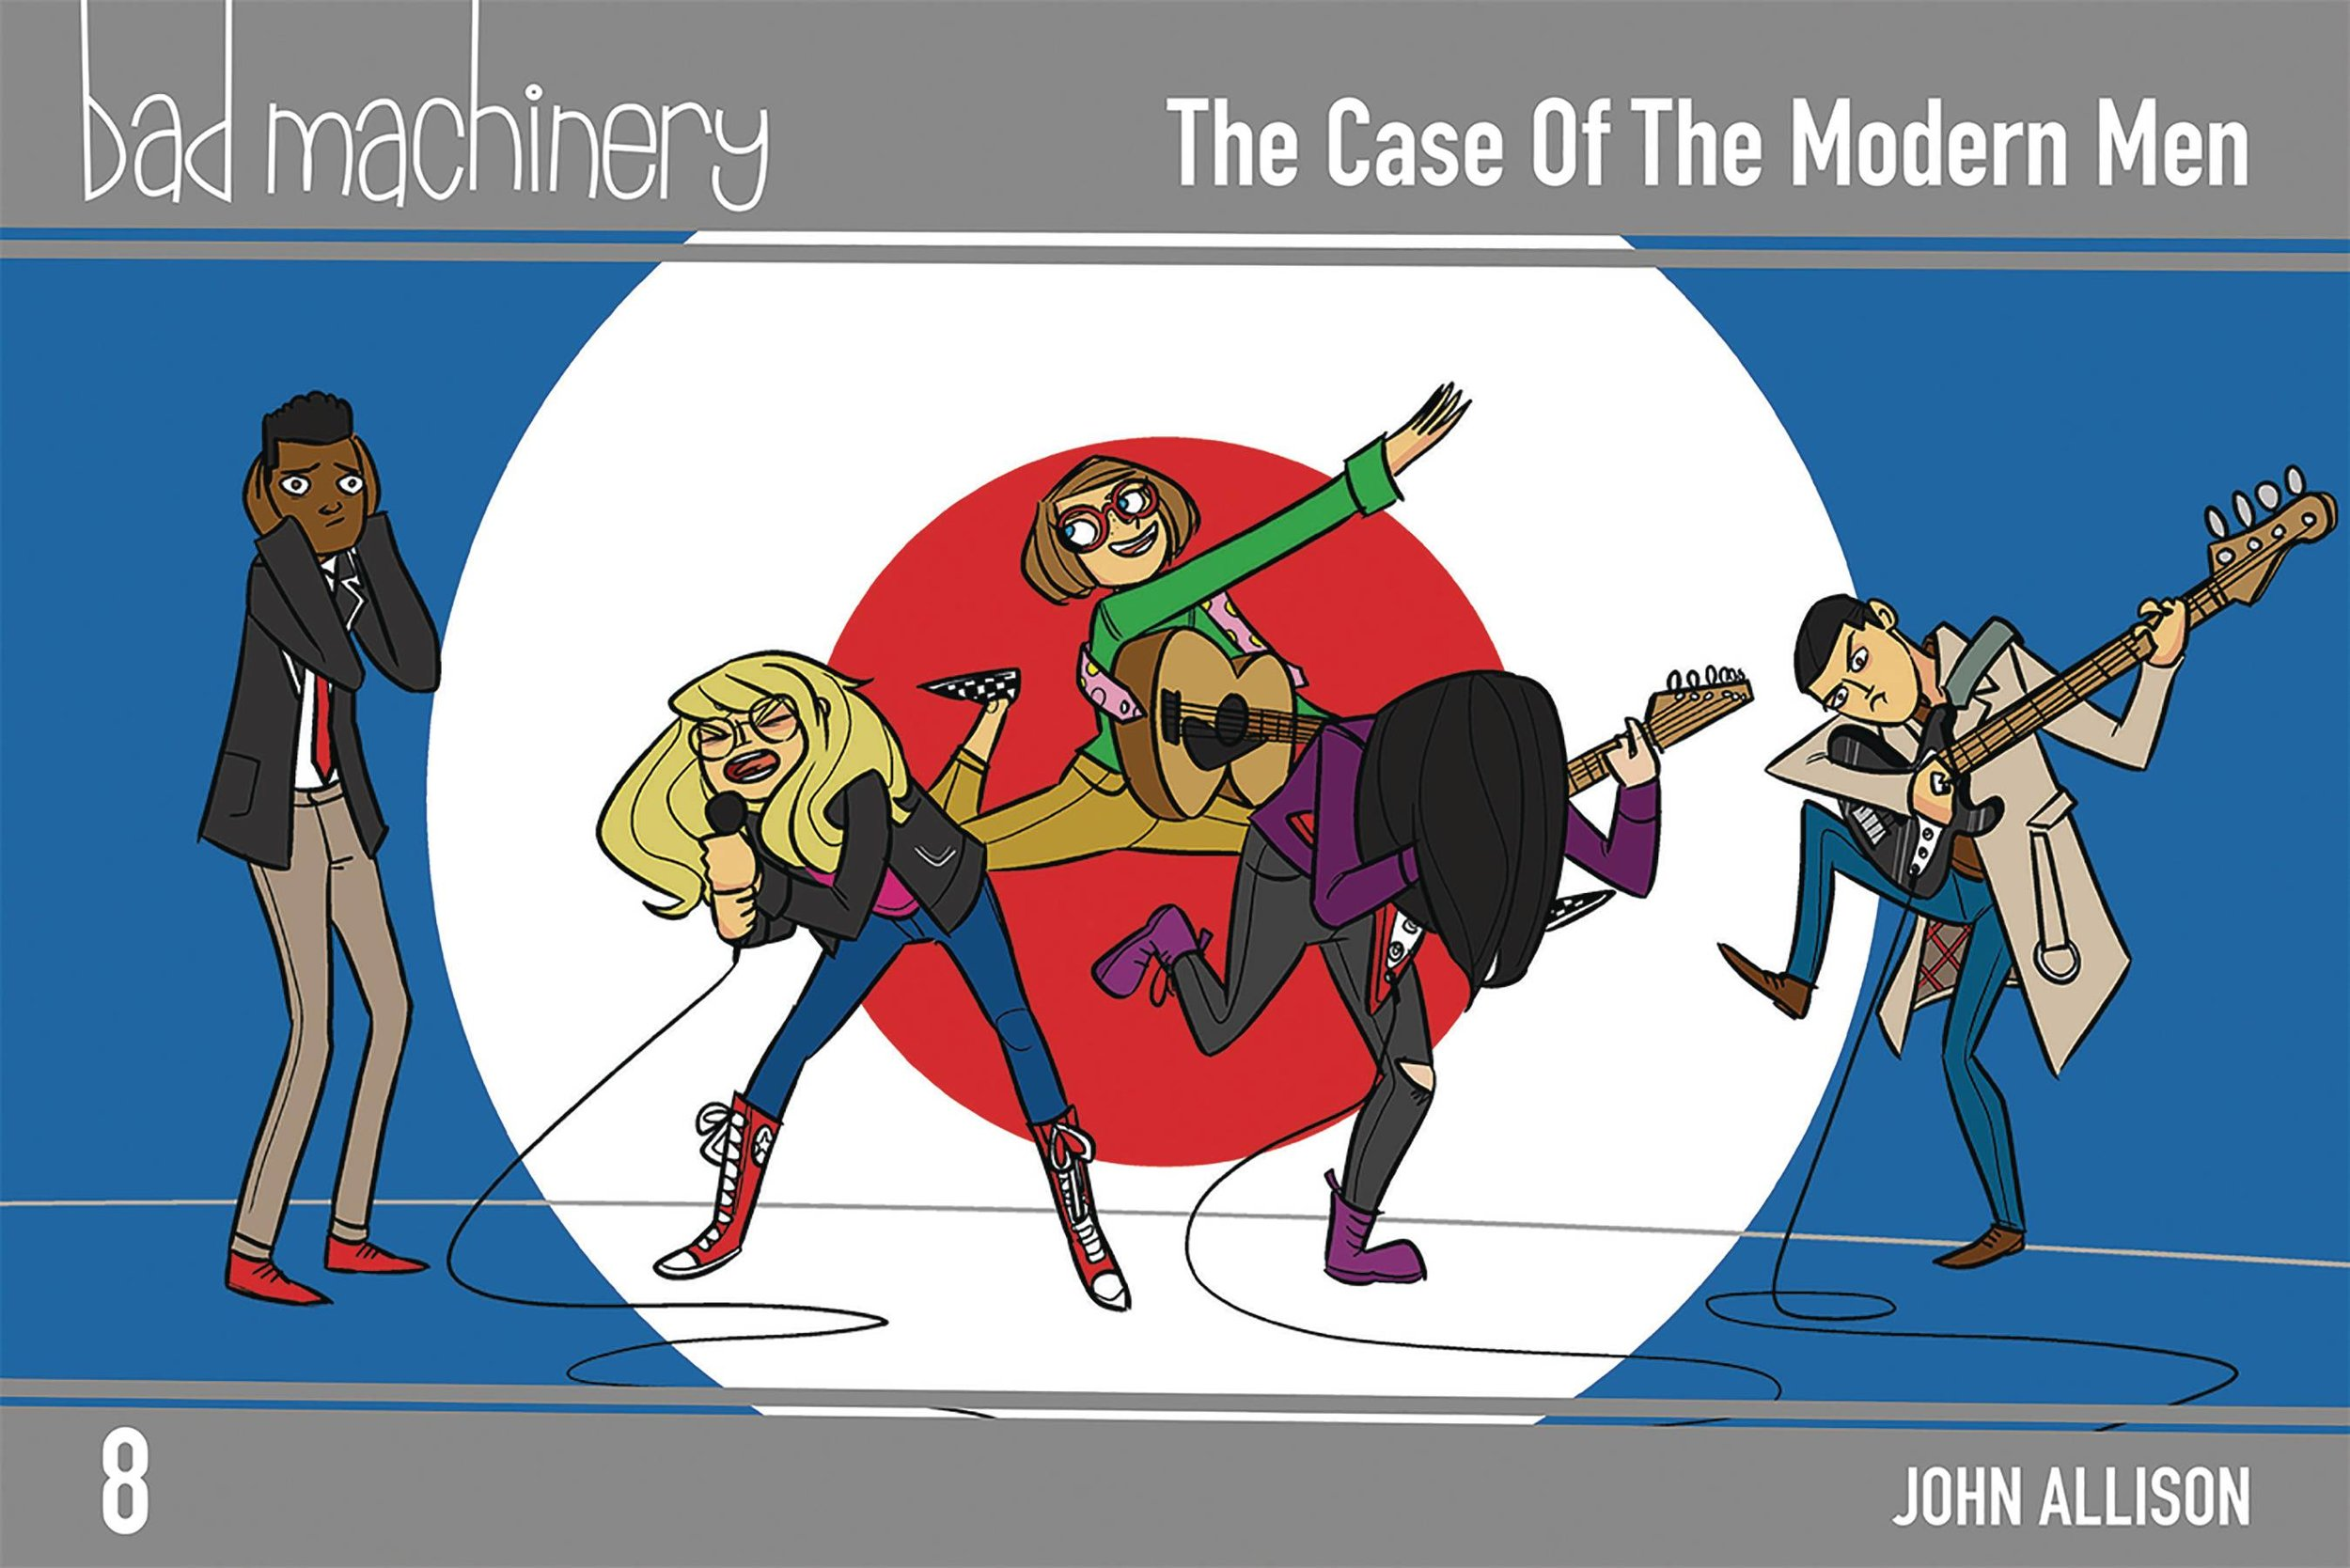 BAD MACHINERY POCKET ED GN 8 CASE OF MODERN MEN.jpg